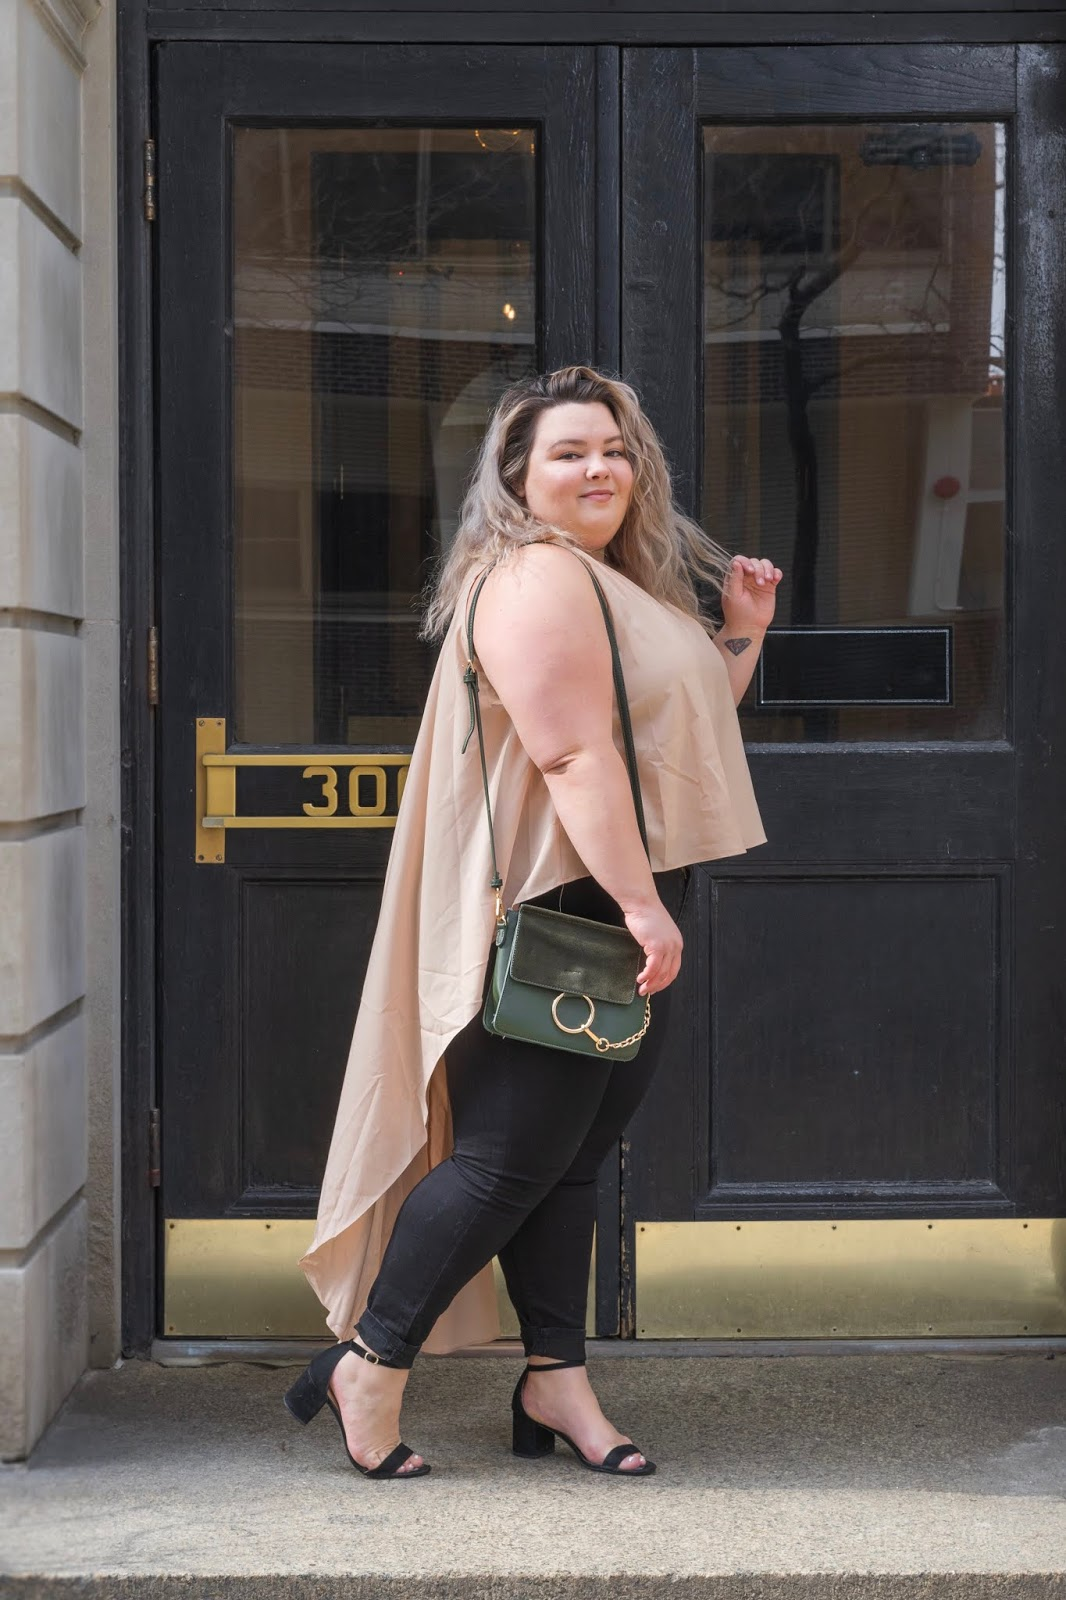 Chicago Plus Size Petite Fashion Blogger, YouTuber, and model Natalie Craig, of Natalie in the City, review's Fashion Nova's hi-lo tops and jeans.